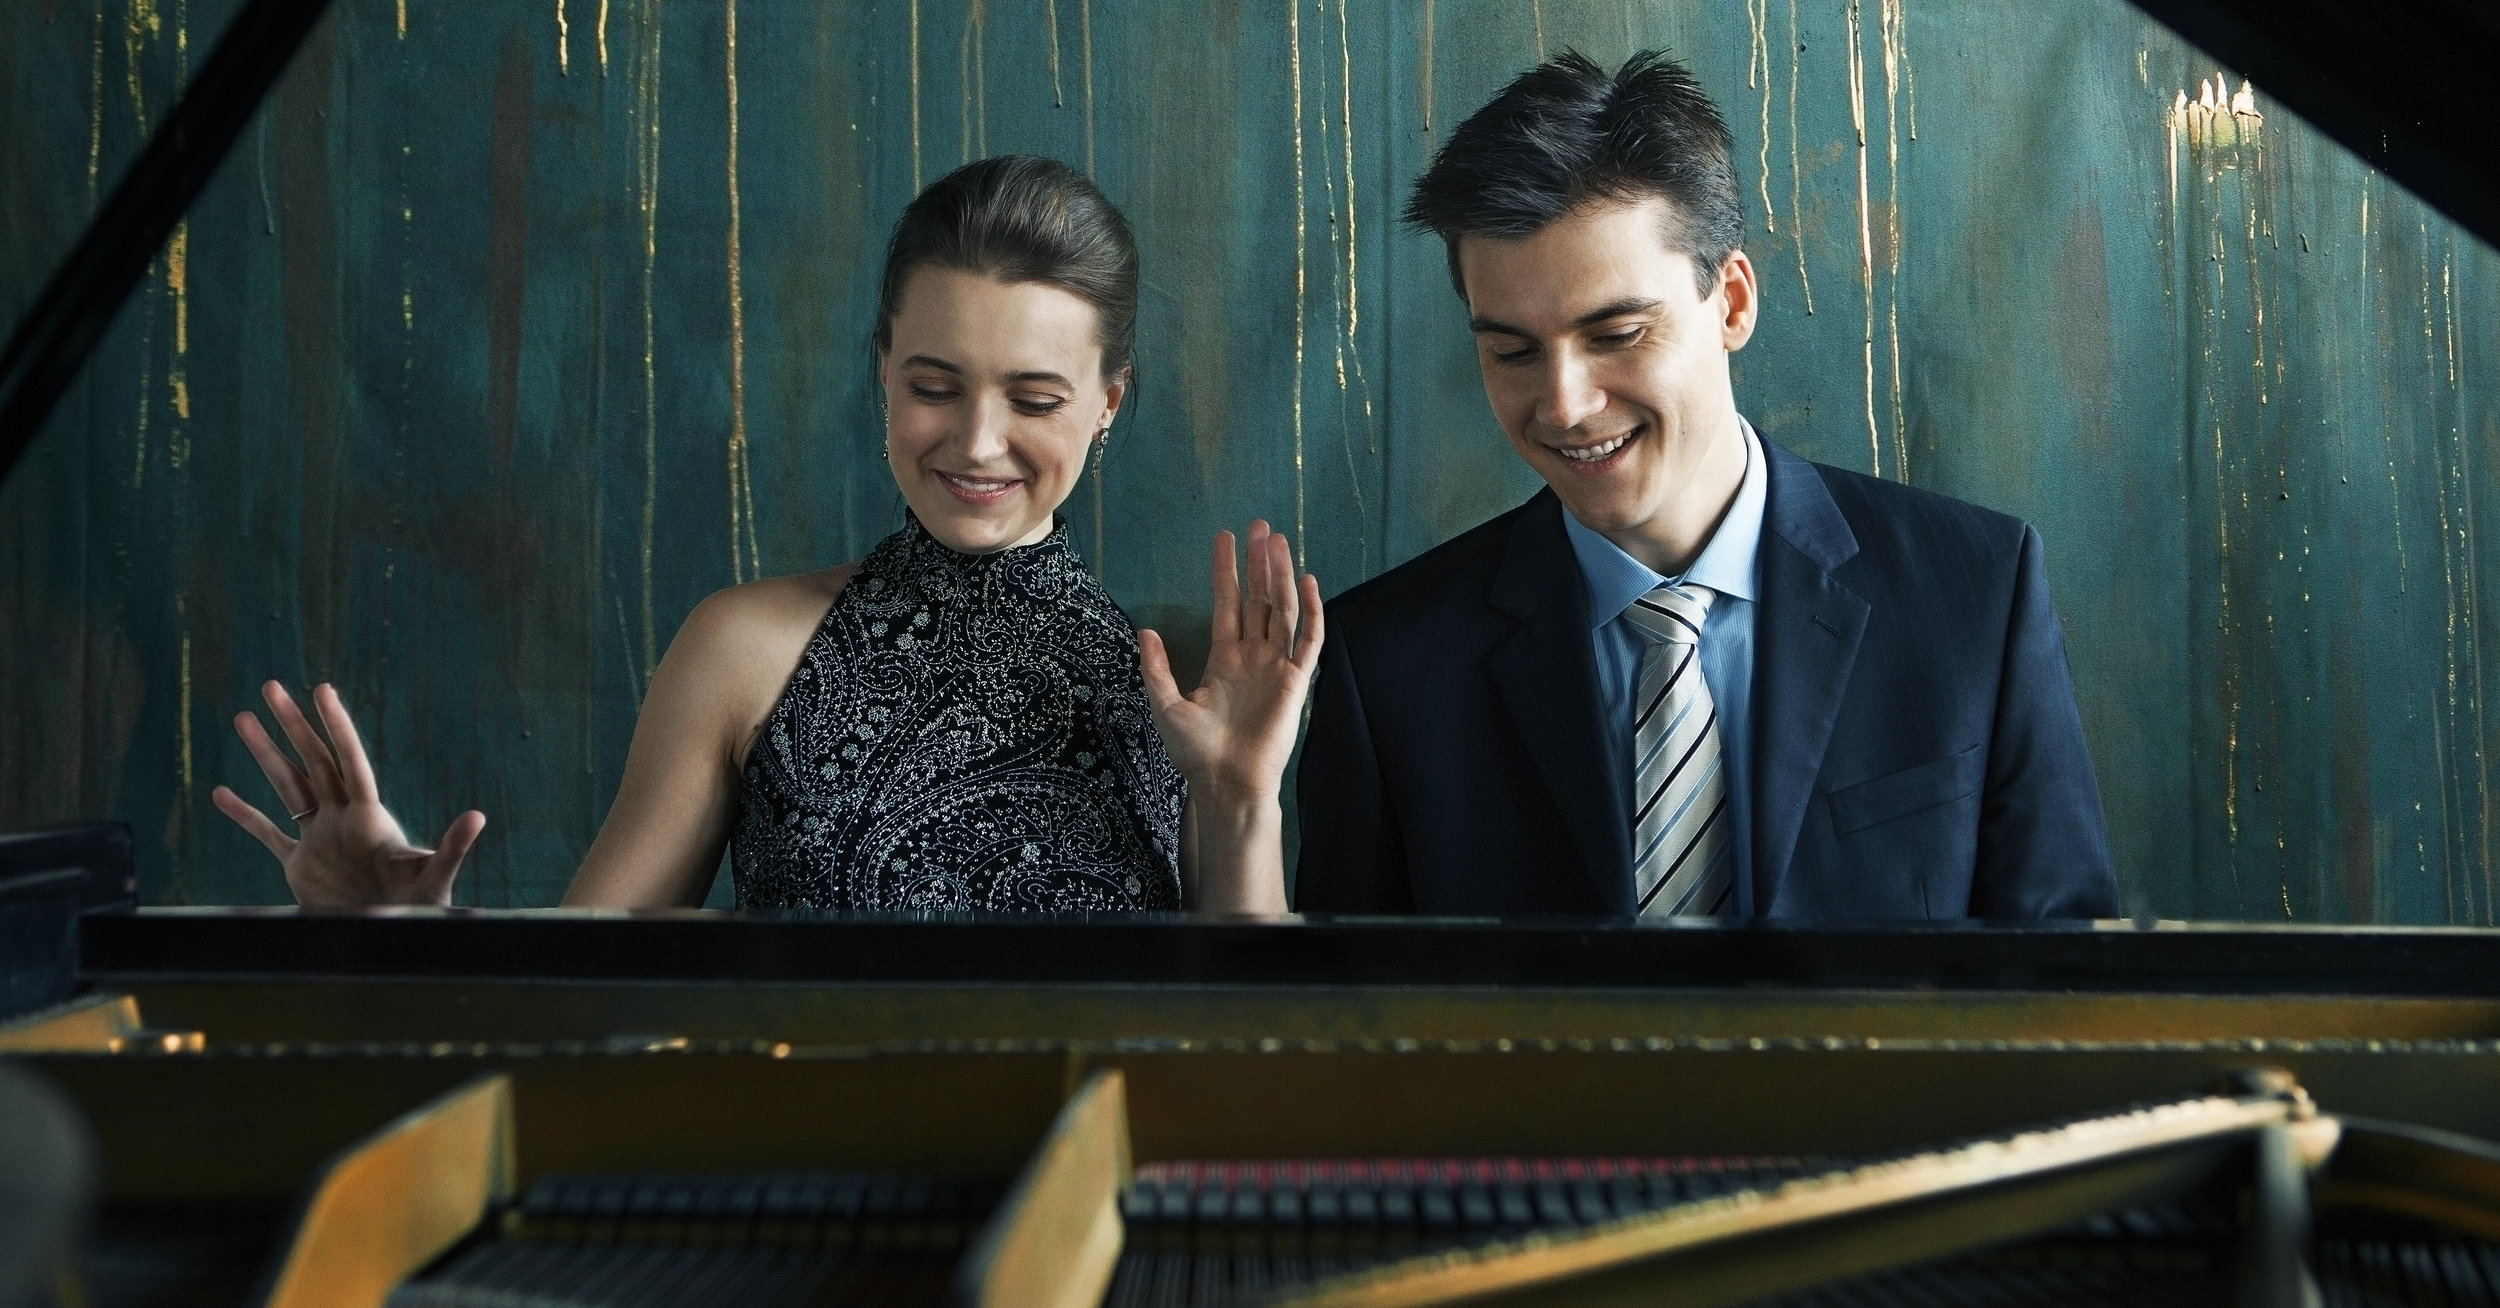 "Praised for their ""stirring performances of rare repertory"" (Fanfare Magazine), Shelest Piano Duo is a husband and wife team of Anna and Dmitri Shelest that takes their roots to the music school in Ukraine. At their official Carnegie Hall debut in February 2018, their CD Release of  Ukrainian Rhaosody  brought the renewed attention to the music of their homeland. Since then, the CD has been featured as the Album of the Week on a number of radio stations nationwide (KUSC Los Angeles, WCRB Boston, etc.) Having been classmates since middle school, the Duo began performing together after their marriage in the US. Their inventive programs brought them to a broad array of venues from concert stages to state functions, and, in words of Secretary-General of the United Nations Ban Ki-moon ""realized diplomacy through music."""